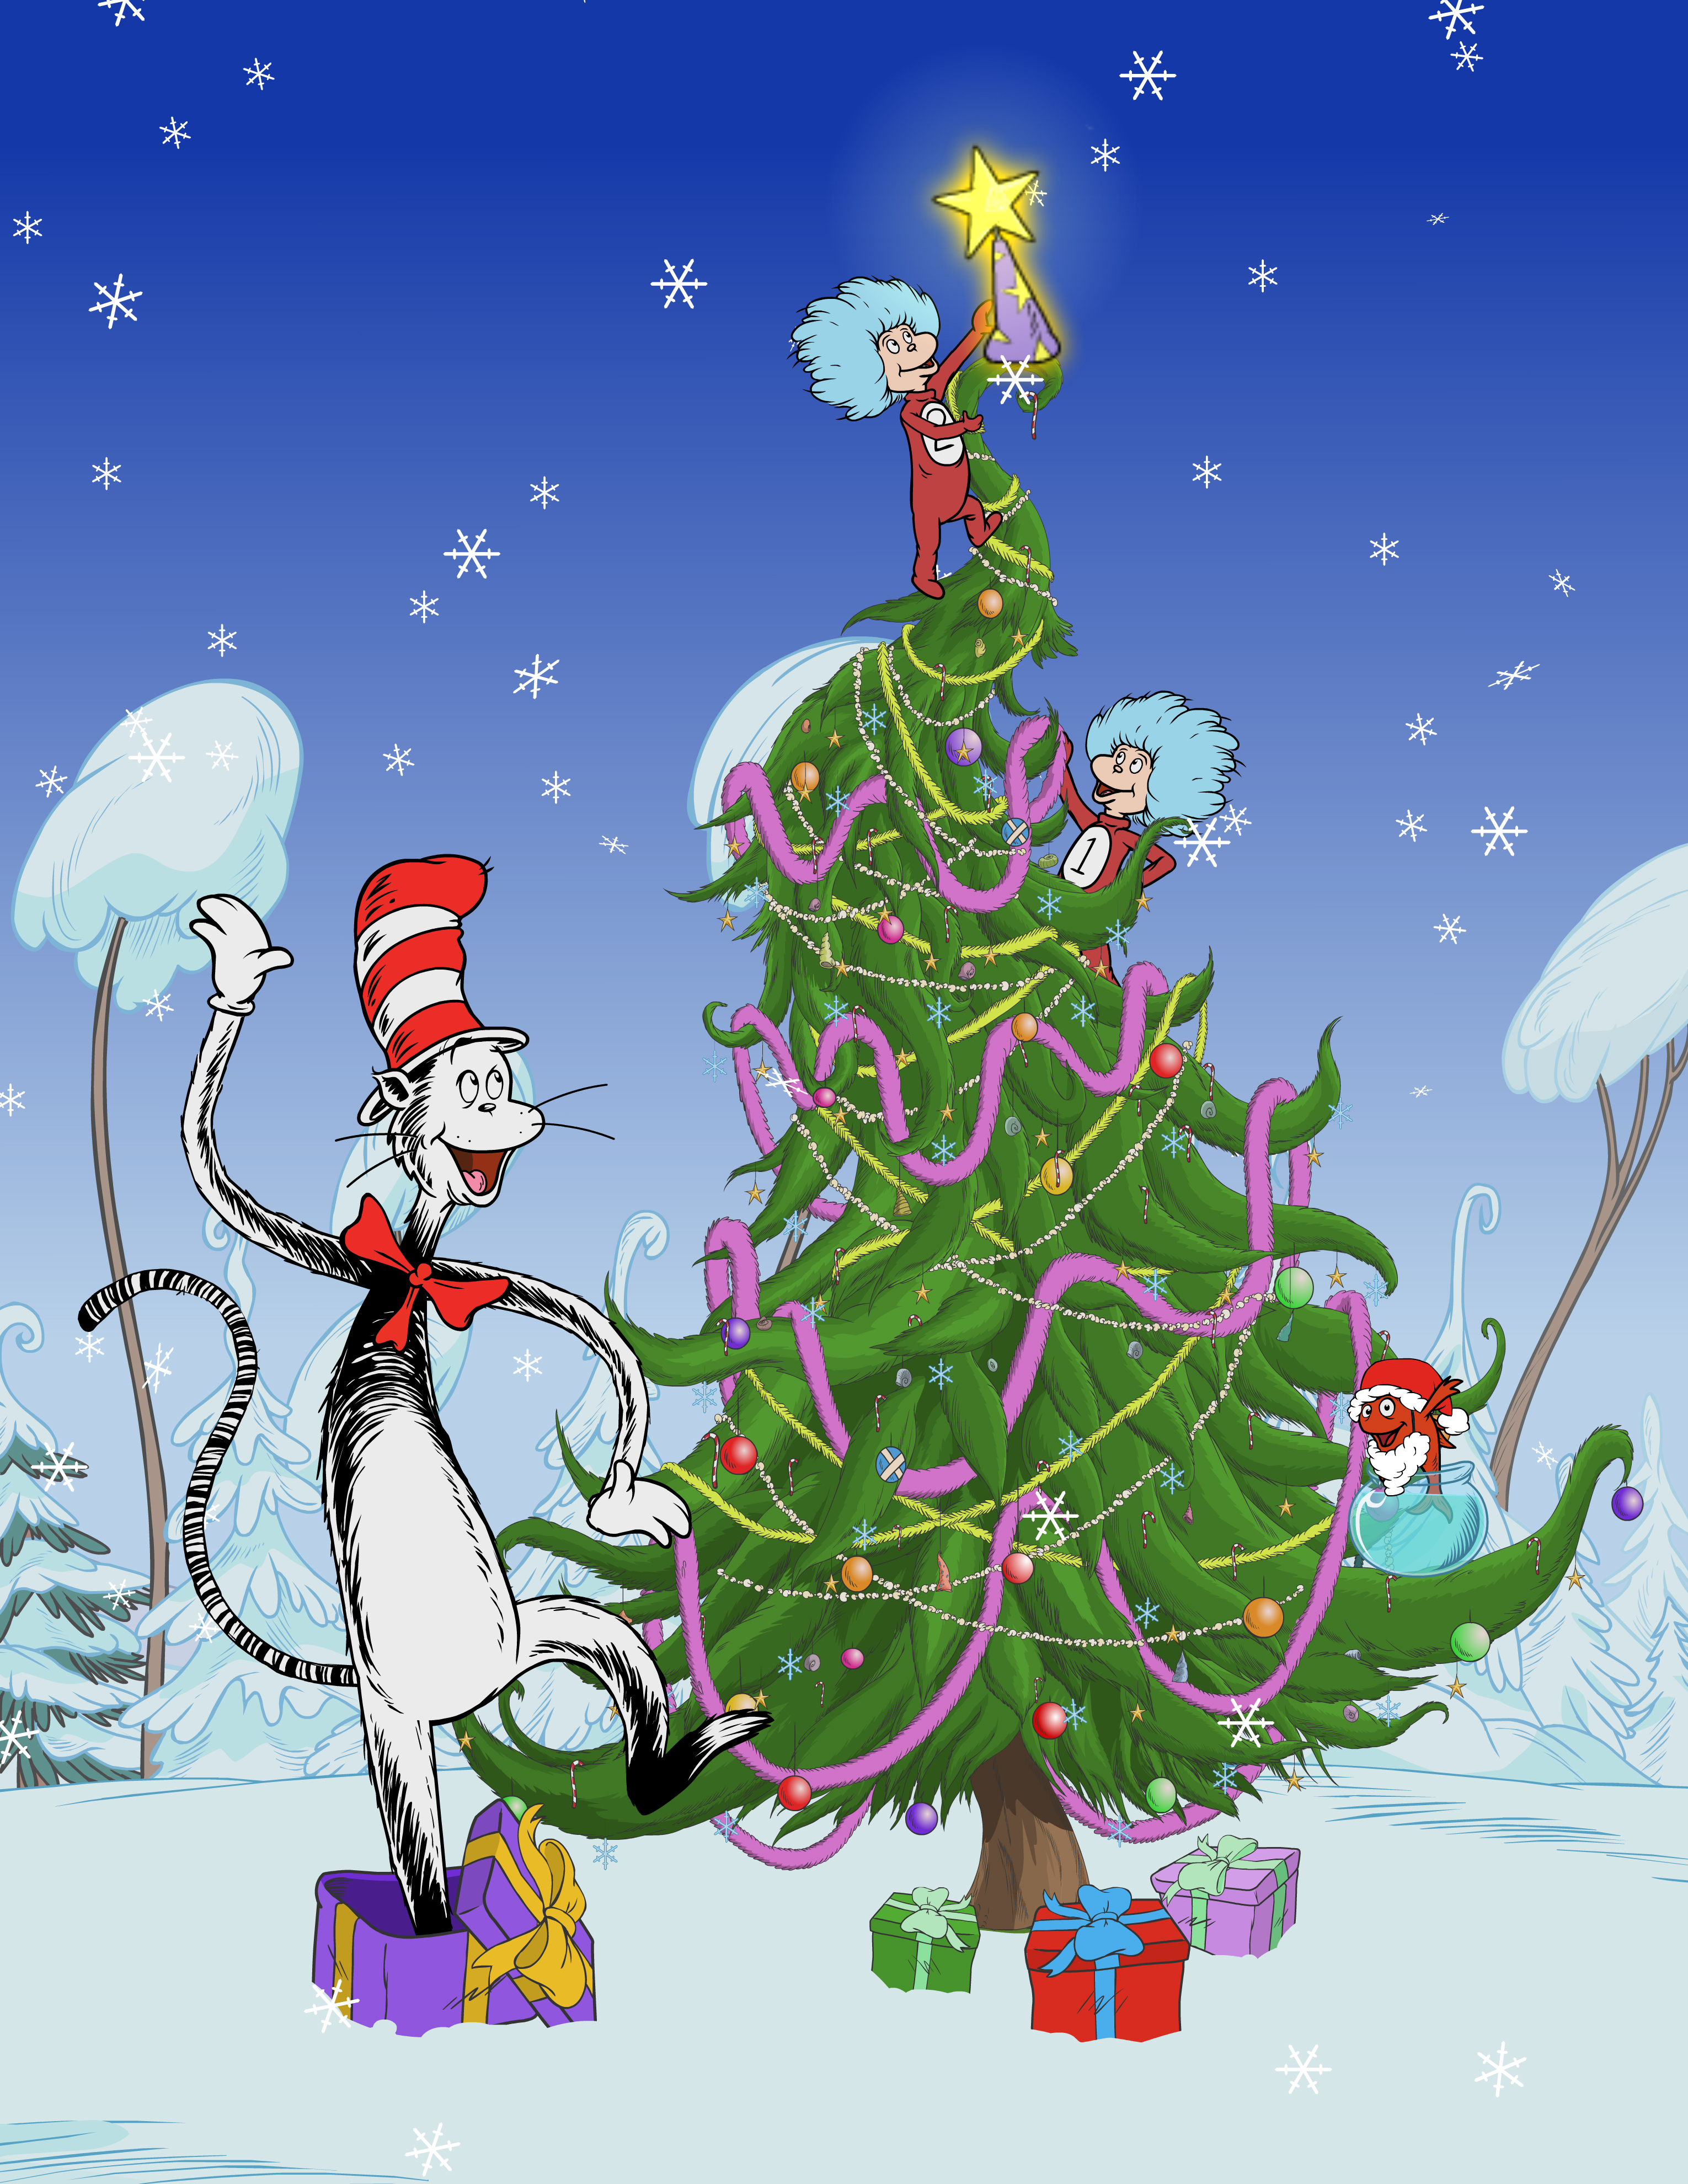 PBS Kids Cat in the Hat Christmas Special Airs November 21st